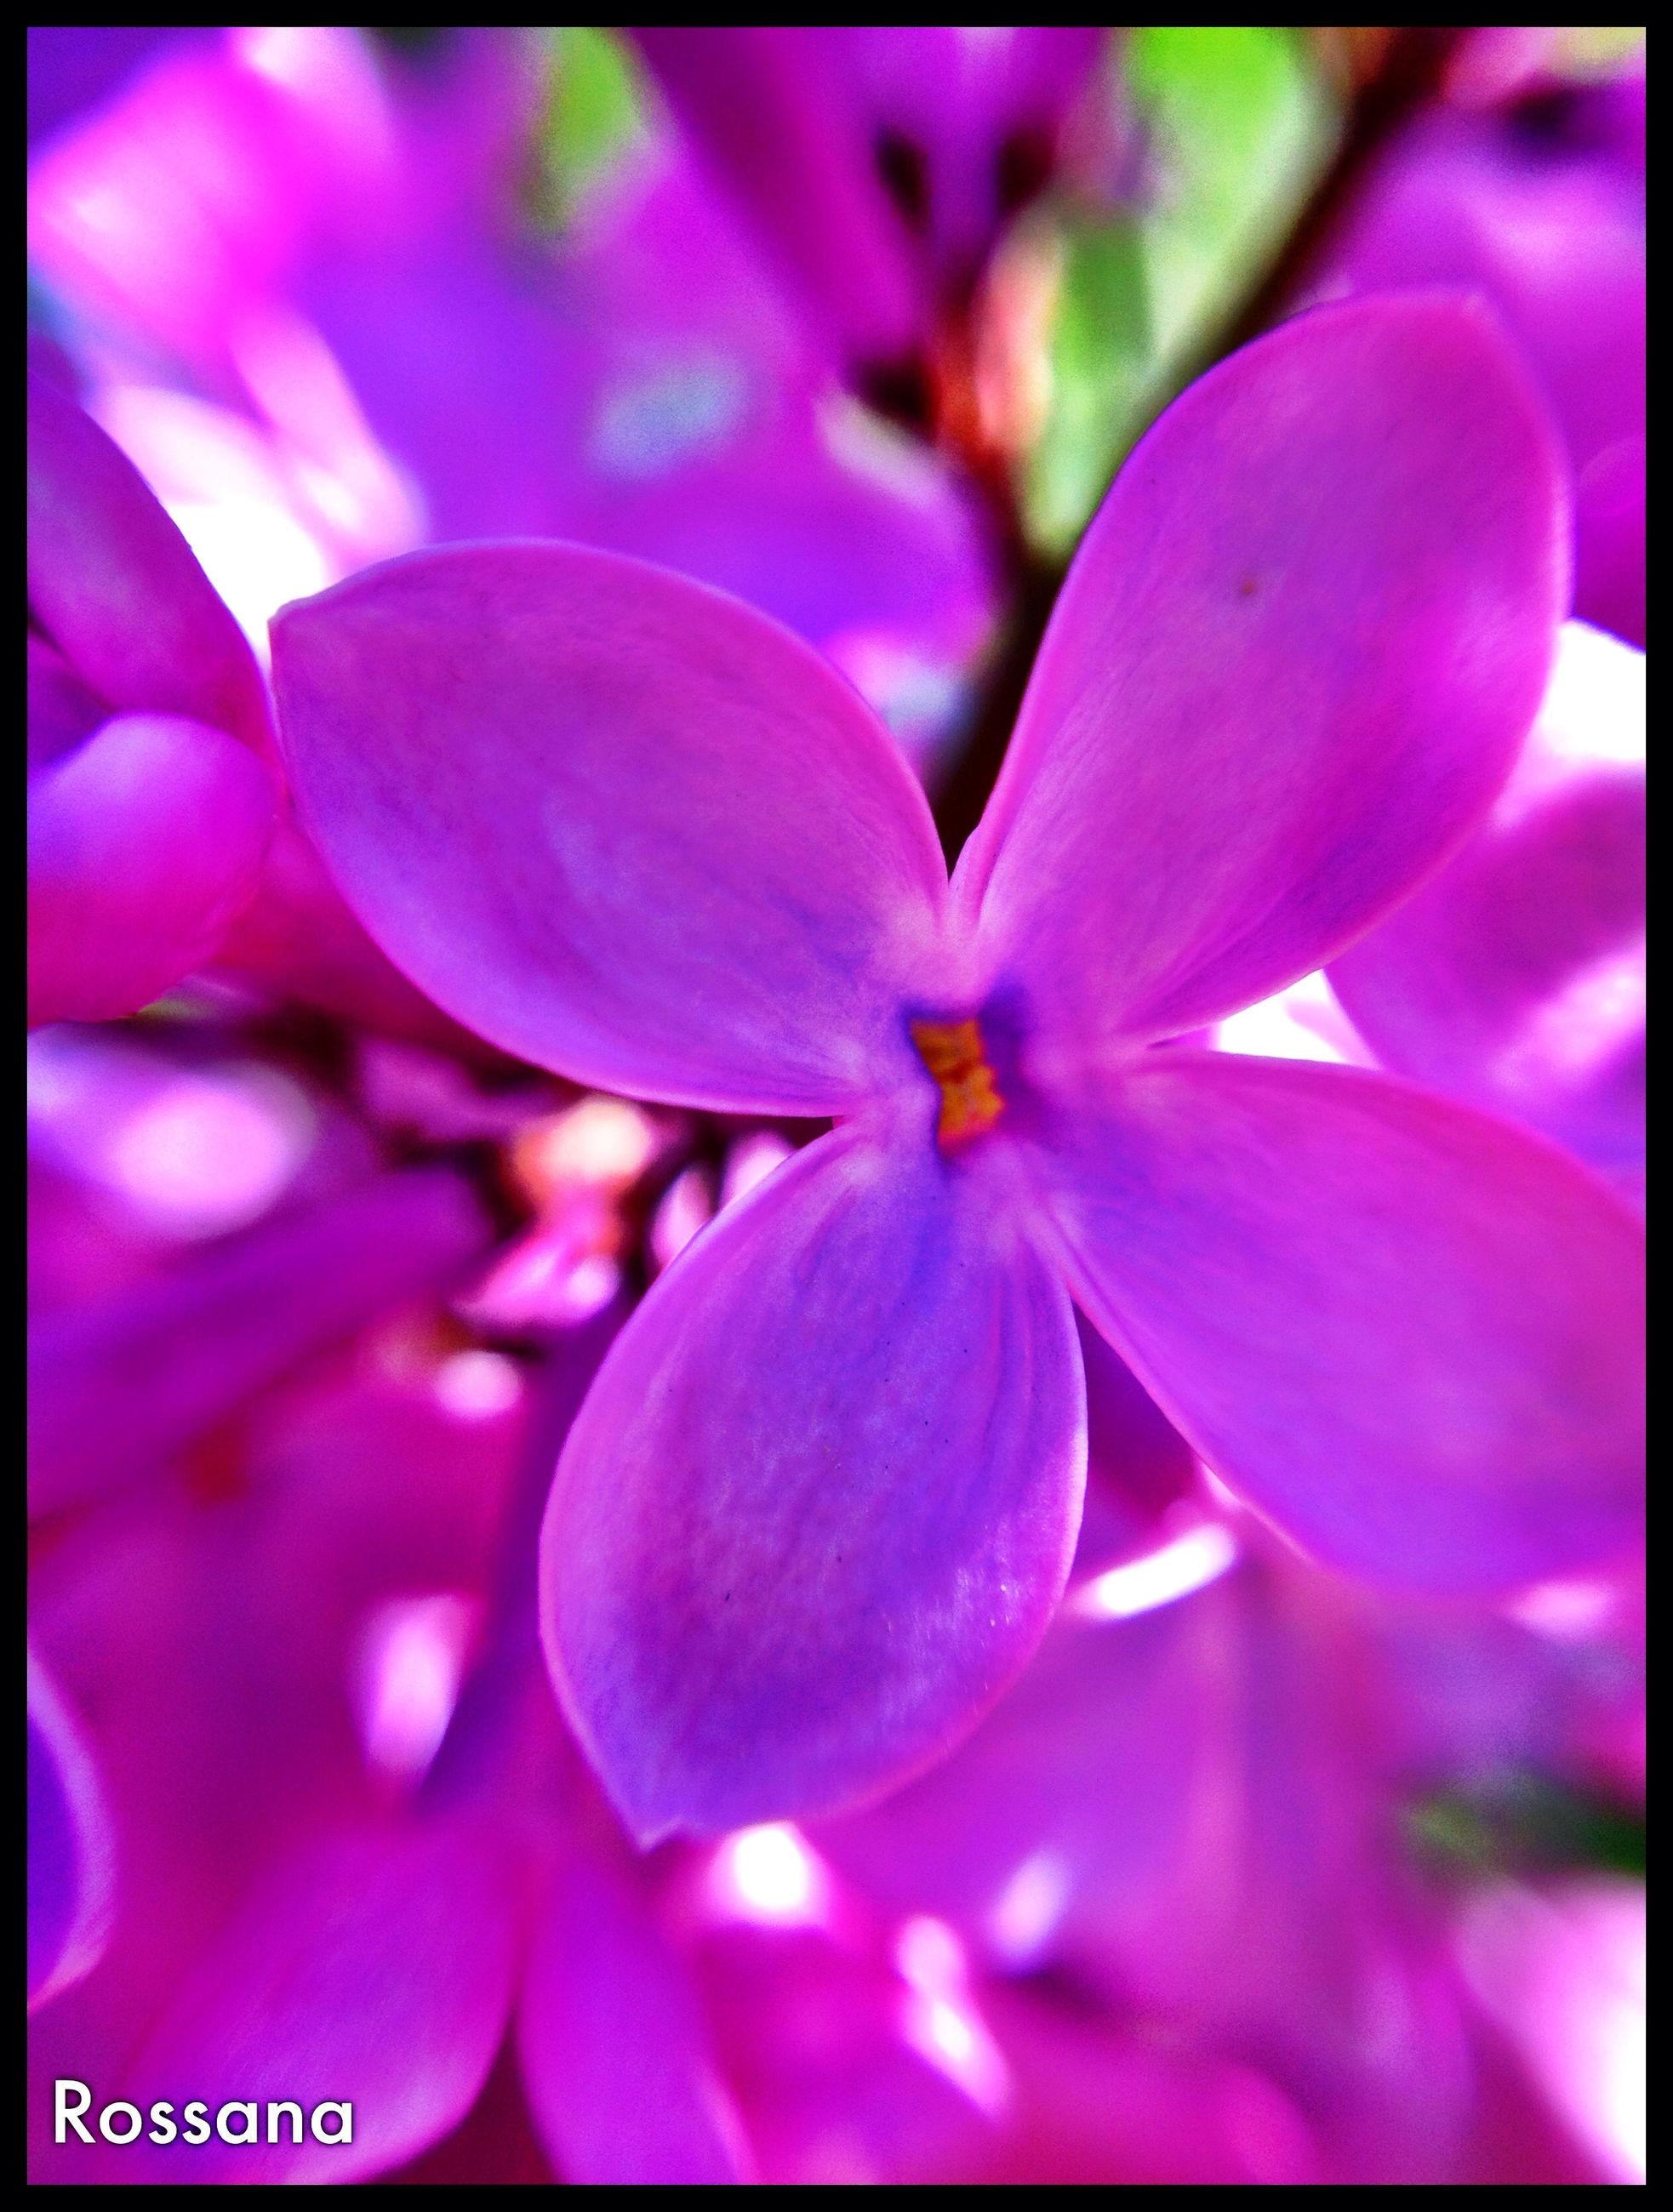 flower, petal, freshness, flower head, fragility, transfer print, growth, close-up, beauty in nature, auto post production filter, nature, stamen, blooming, purple, focus on foreground, pink color, selective focus, pollen, blossom, in bloom